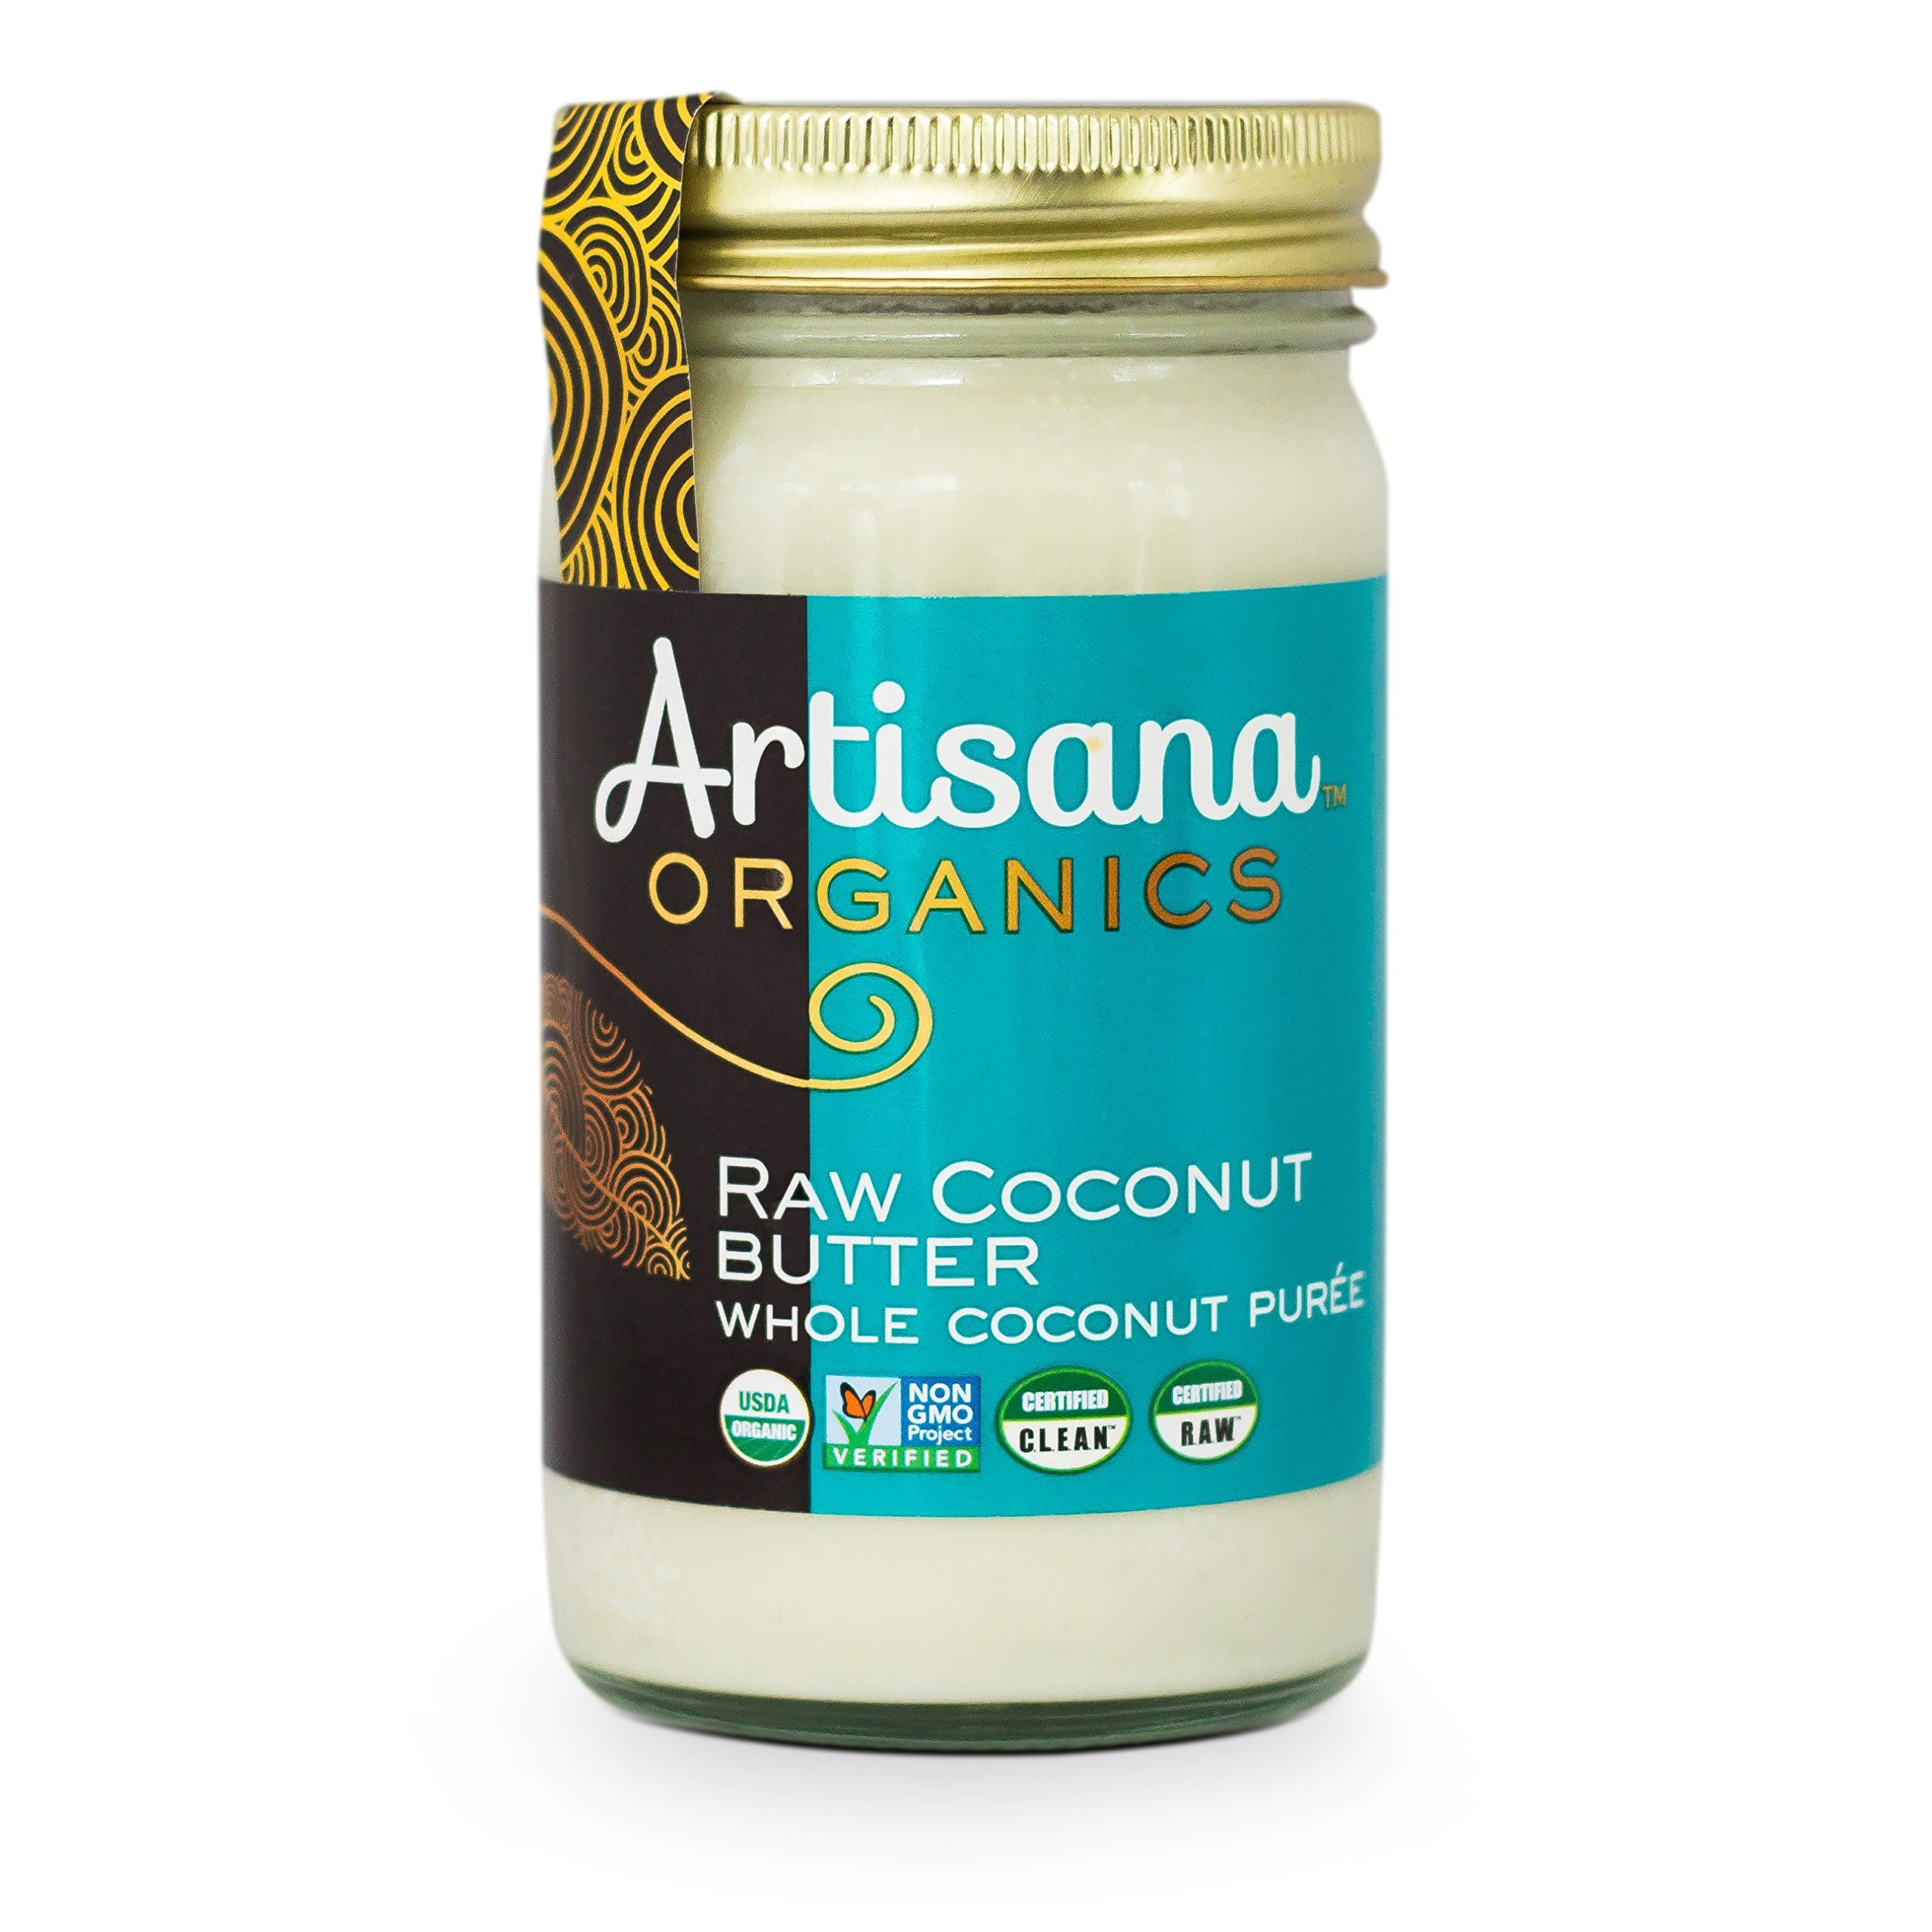 Artisana Organics - Coconut Butter, Organic, Certified R.A.W spread, no added sugar, Non-GMO and vegan (14oz)